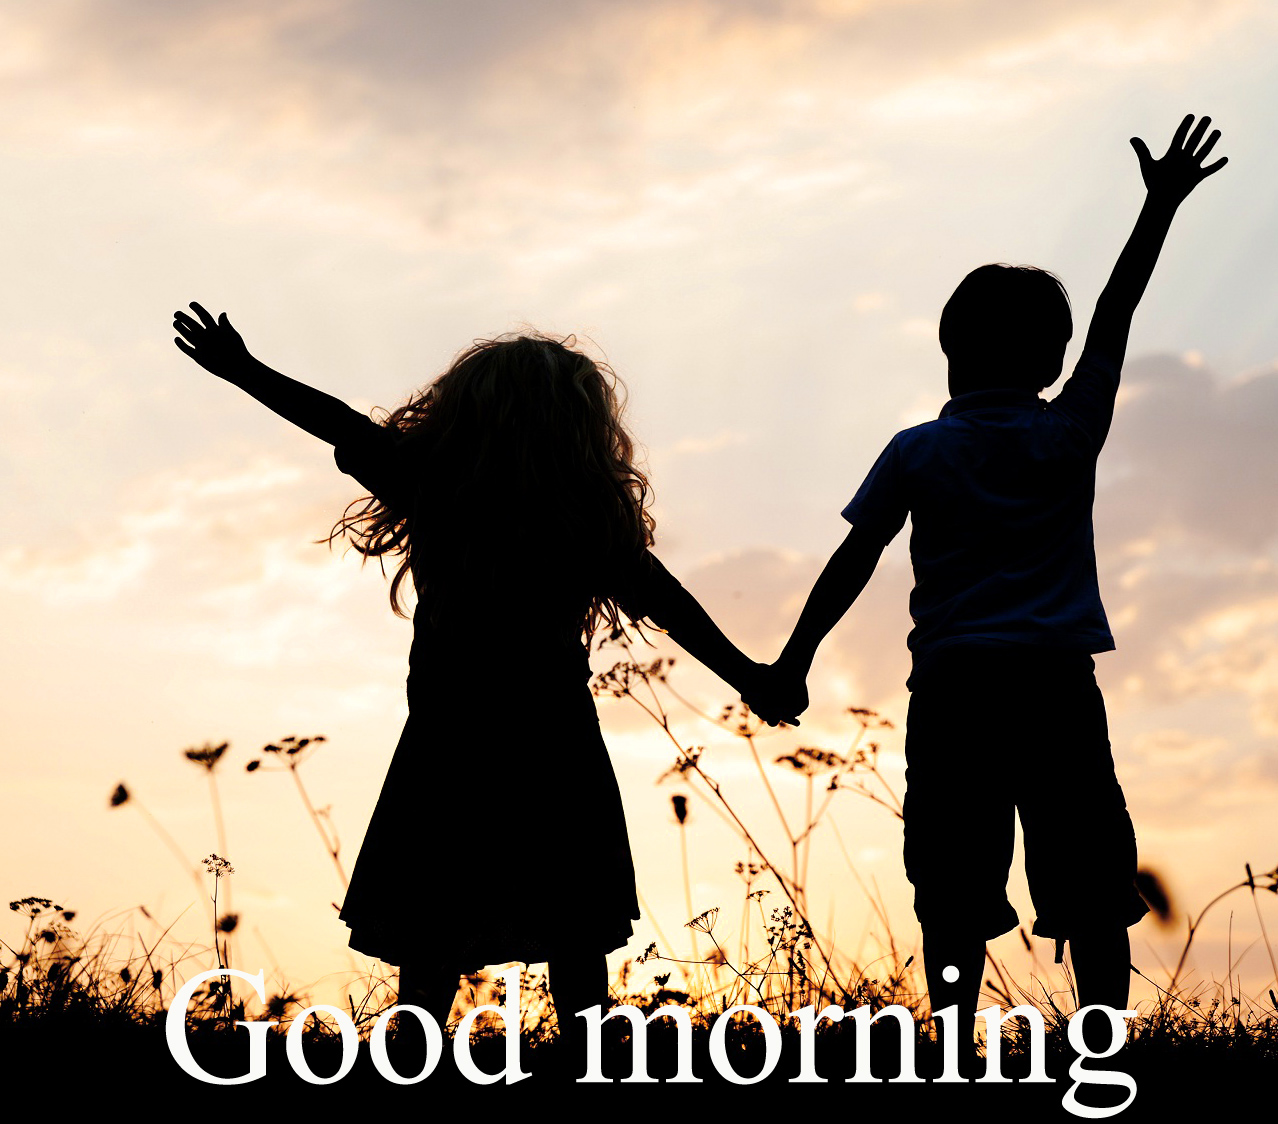 Good morning wishes for my dear friend Pictures Images Free Download